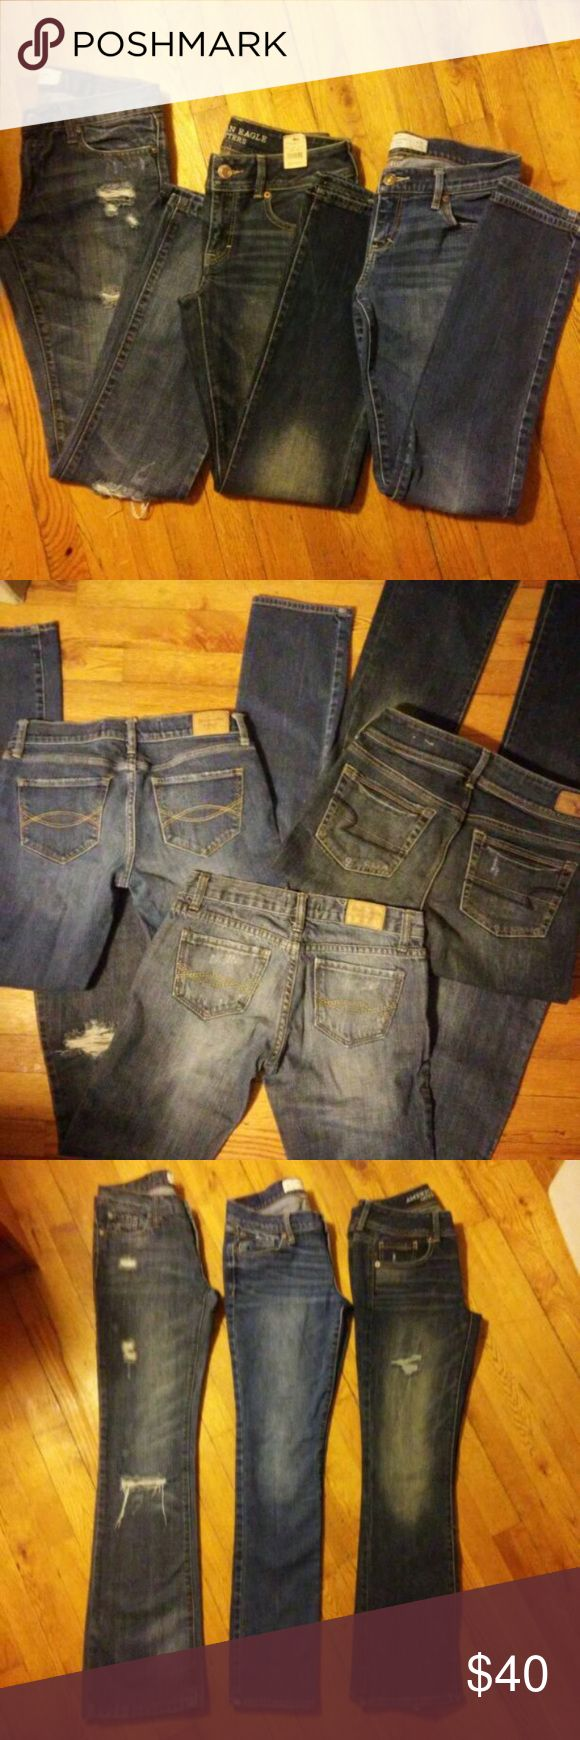 Abercrombie Jeans Bundle! 1st pair- Abercrombie and Fitch  Dark Wash Distressed  Bootcut  Excellent condition only worn twice washed once.   2nd pair - Abercrombie and Fitch  Medium Wash  Skinny.  Good Used Condition                                                                                                                                  3rd Pair - American Eagle  NEW WITH TAGS  Med-Dark Wash  Skinny Kick.           All 3 PAIRS COULD BE ADORABLE SUMMER SHORTS :) #DIY #Distressed…